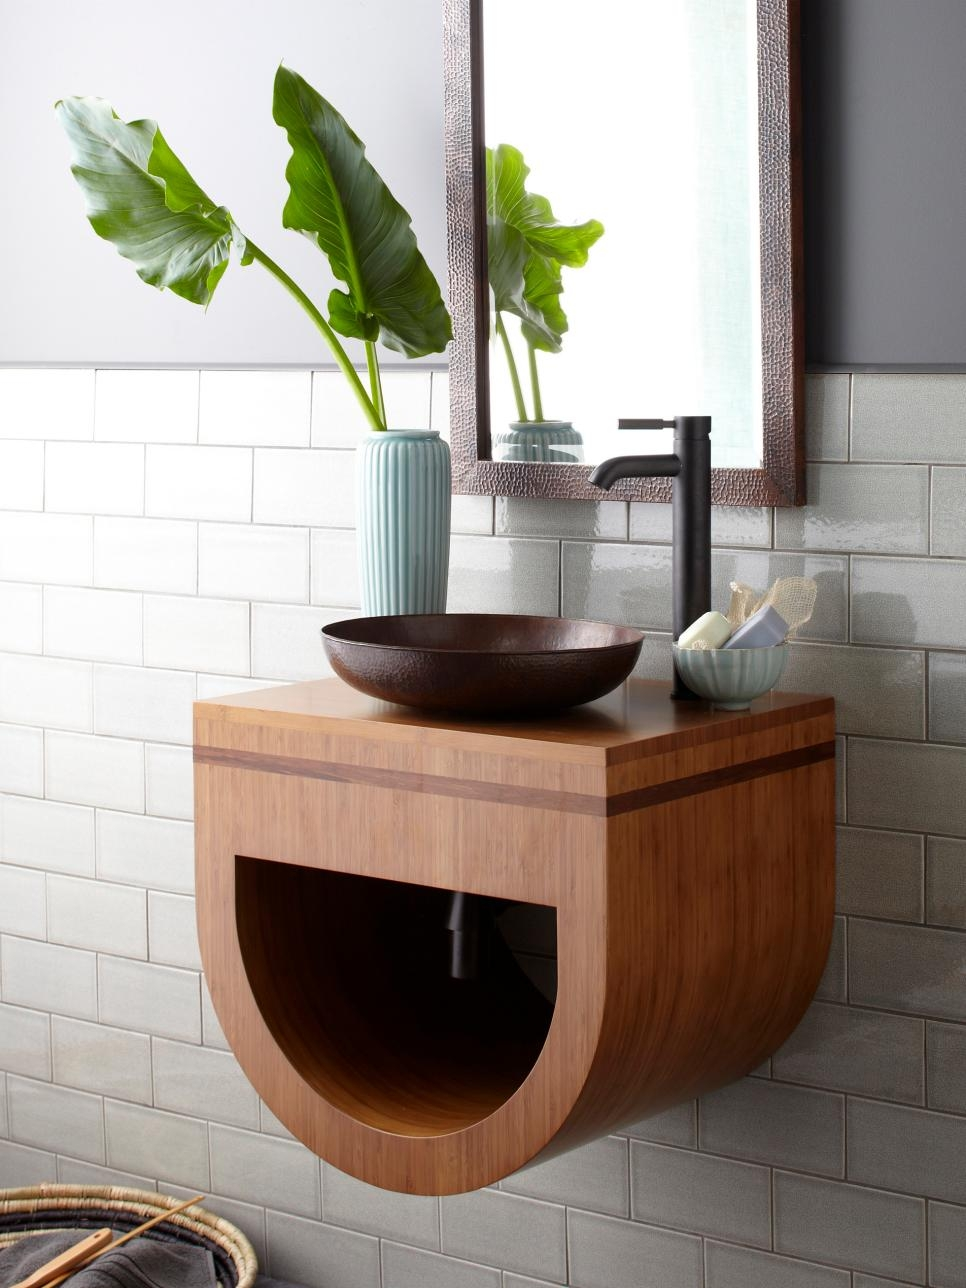 Sinks With Storage For Small Bathrooms